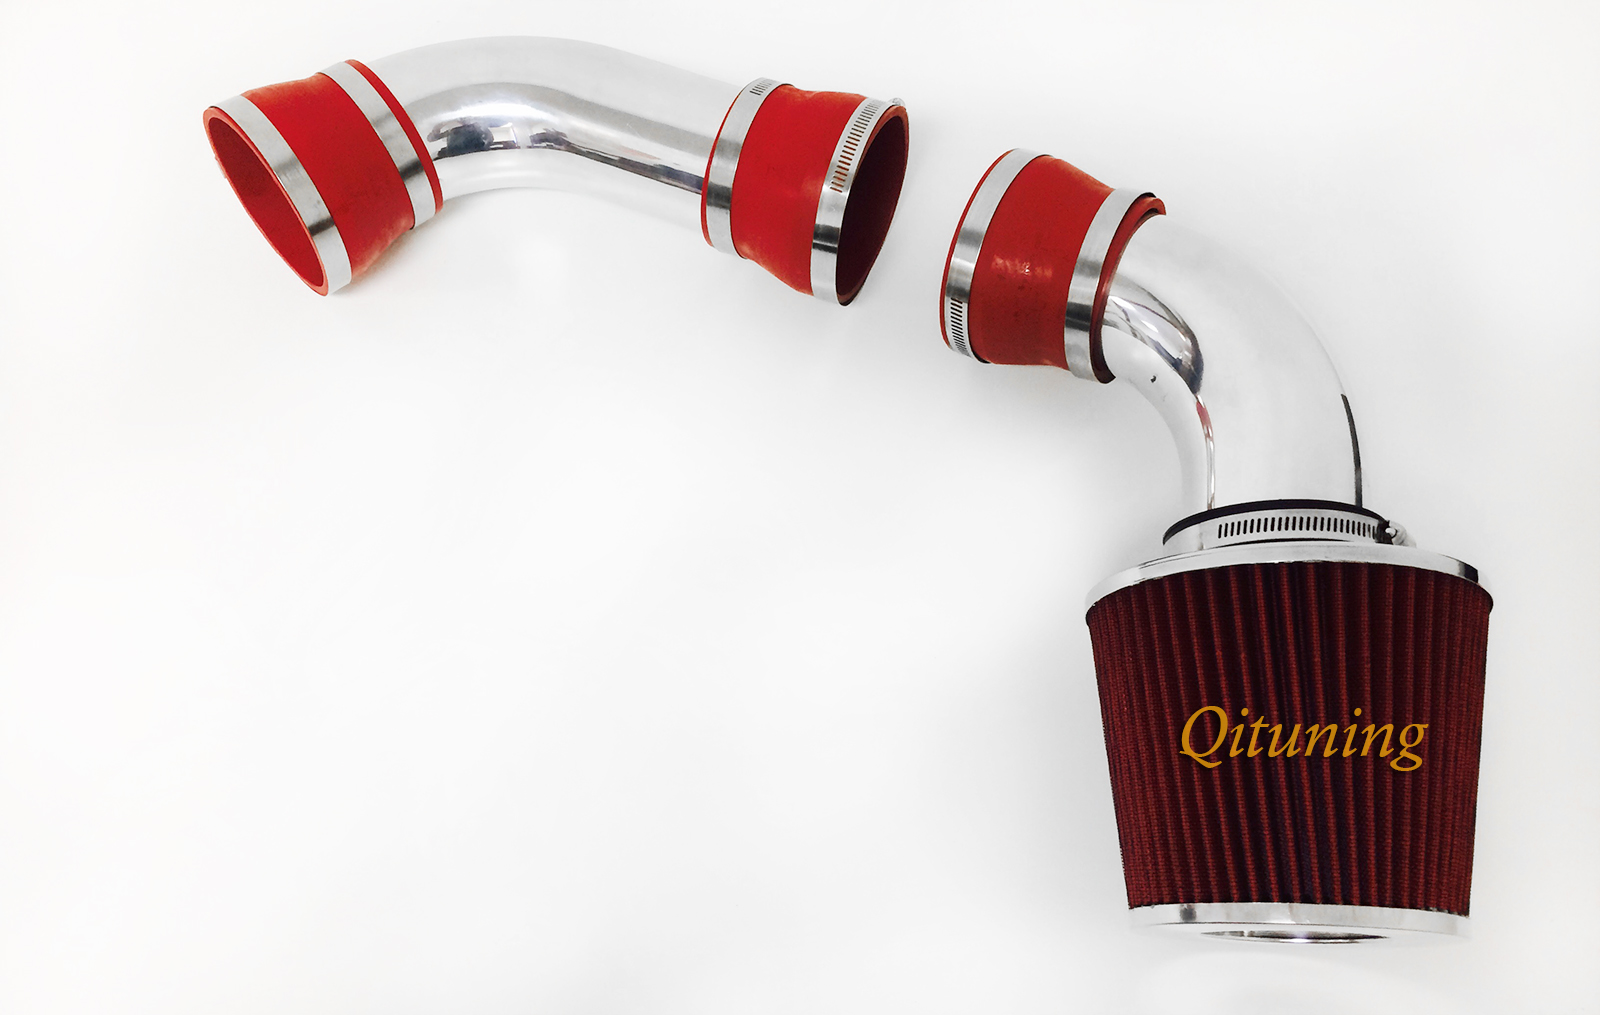 High Performance Parts Heat Shield Cold Air Intake Kit /& Red Filter Combo Compatible for Chevy 1996-2004 S-10 1996-2001 Jimmy Blazer//Sonoma V6 3.4L